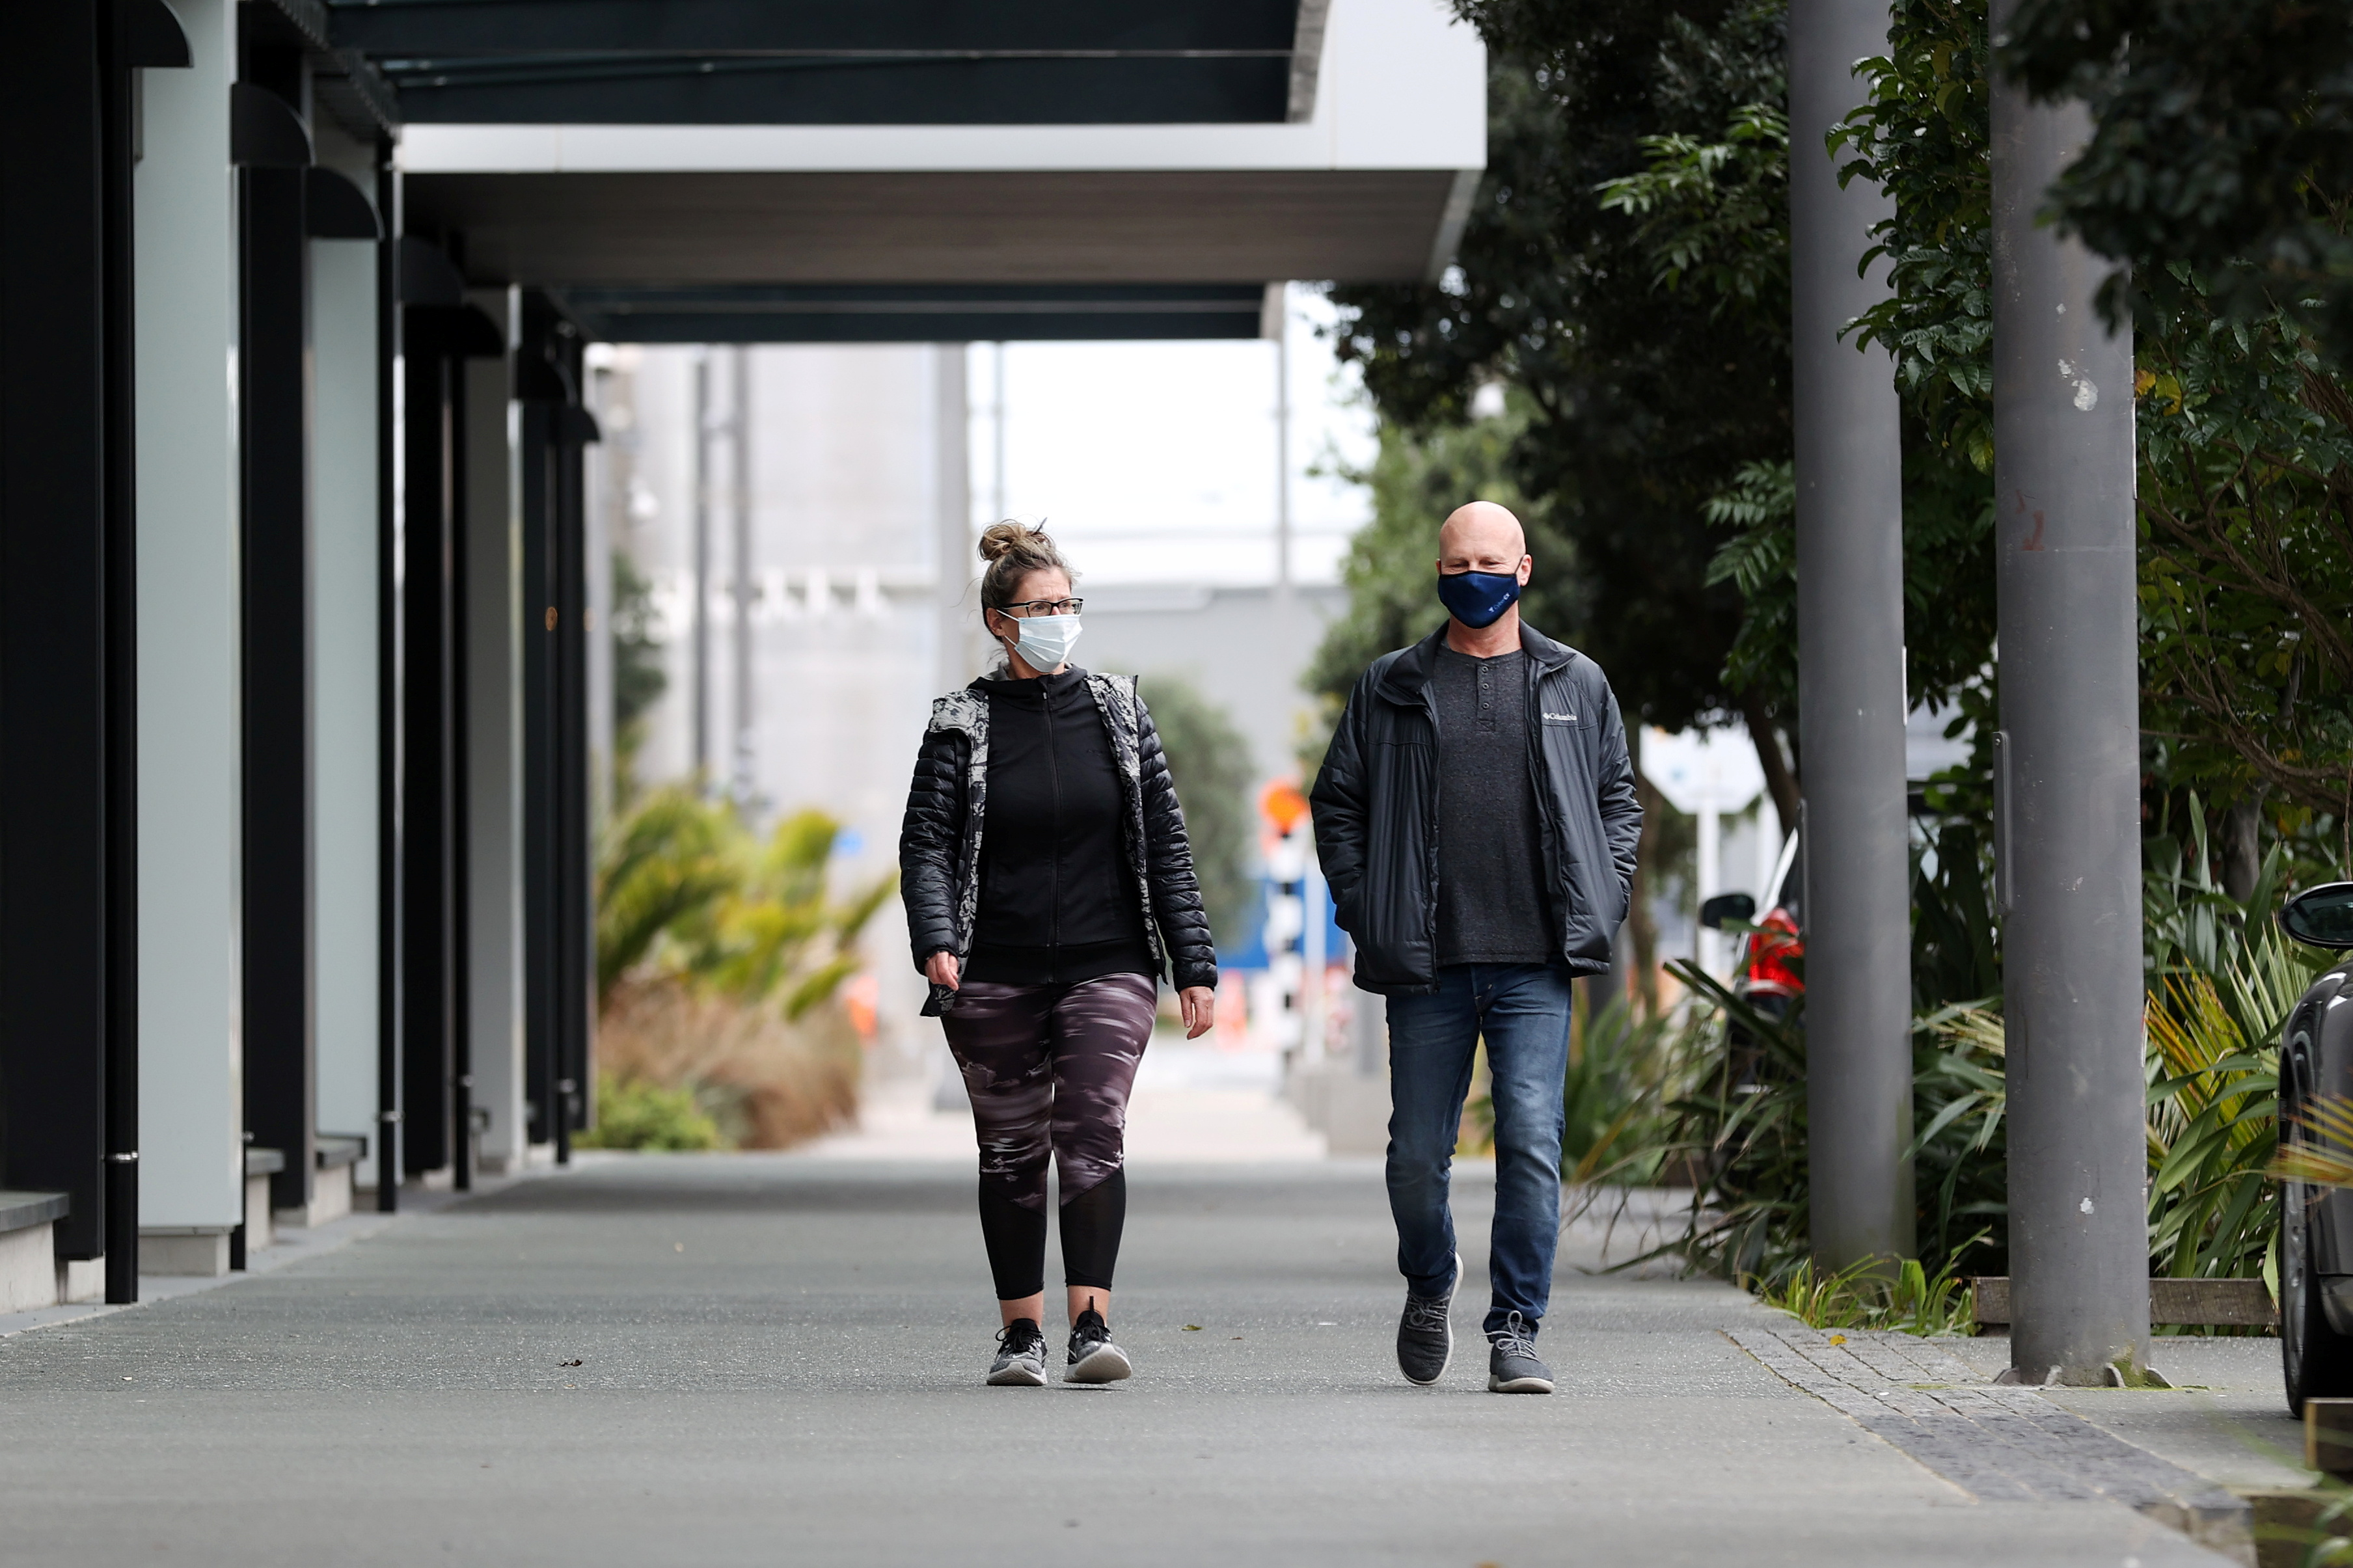 People wear masks as they exercise in the normally bustling Wynyard Wharf area on Auckland's waterfront during a lockdown to curb the spread of a coronavirus disease (COVID-19) outbreak, in Auckland, New Zealand, August 26, 2021.  REUTERS/Fiona Goodall